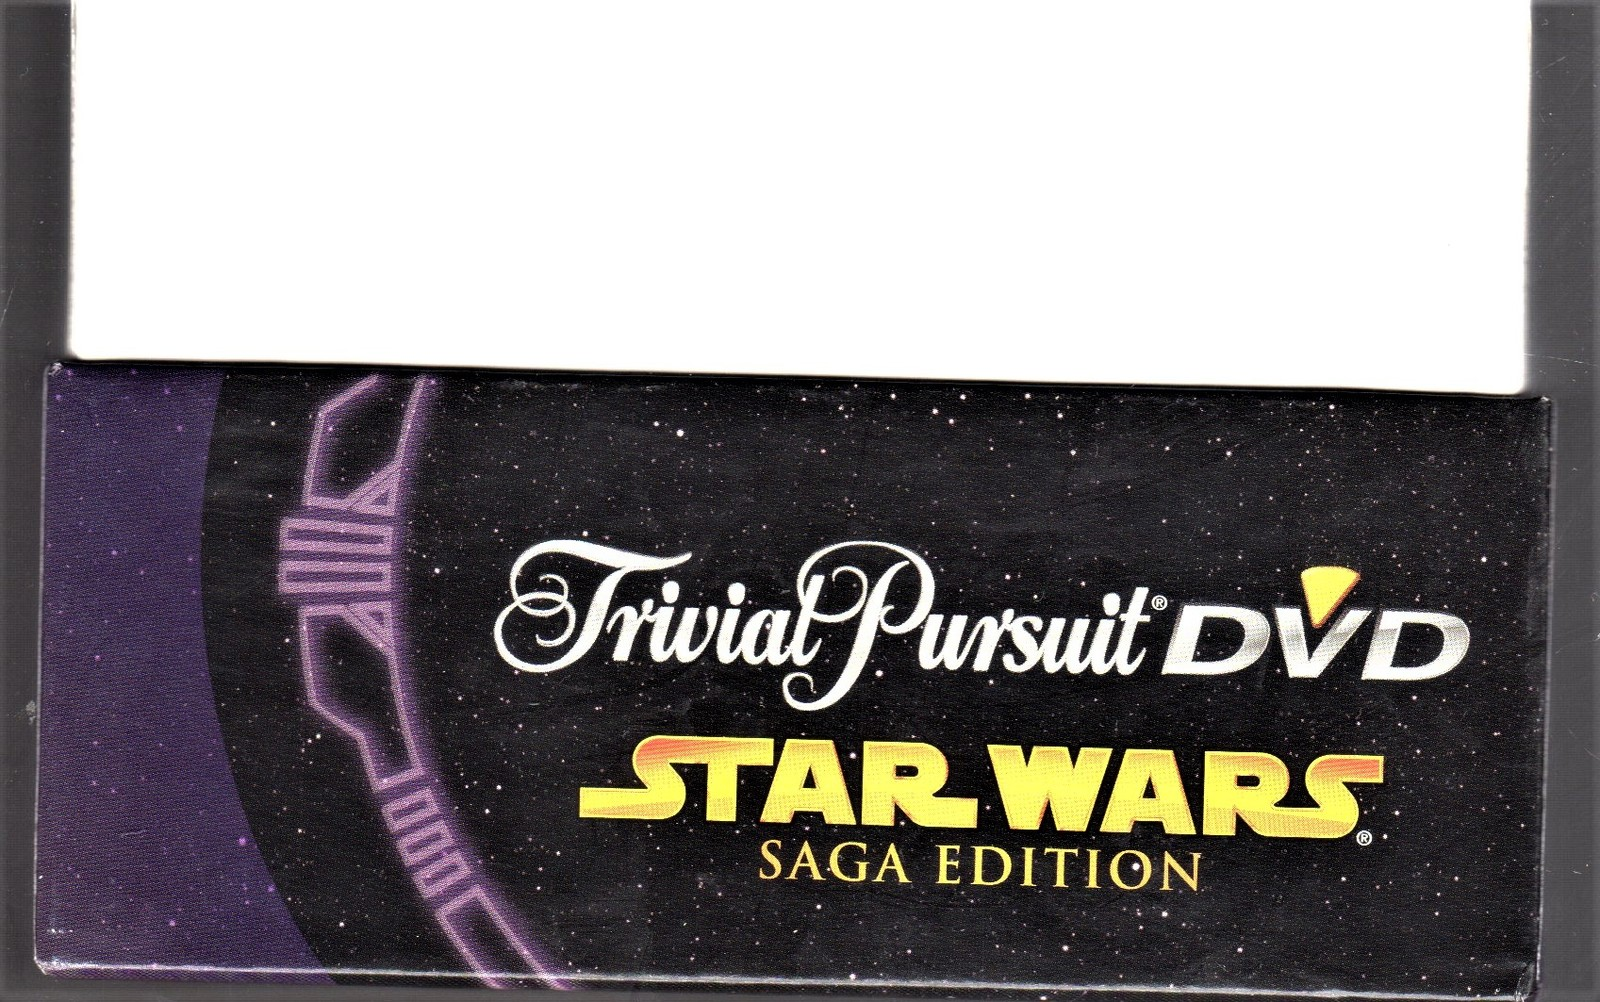 Star Wars - Trivia Pursuit DVD Star Wars Saga Edition (Numbered limited Edition)